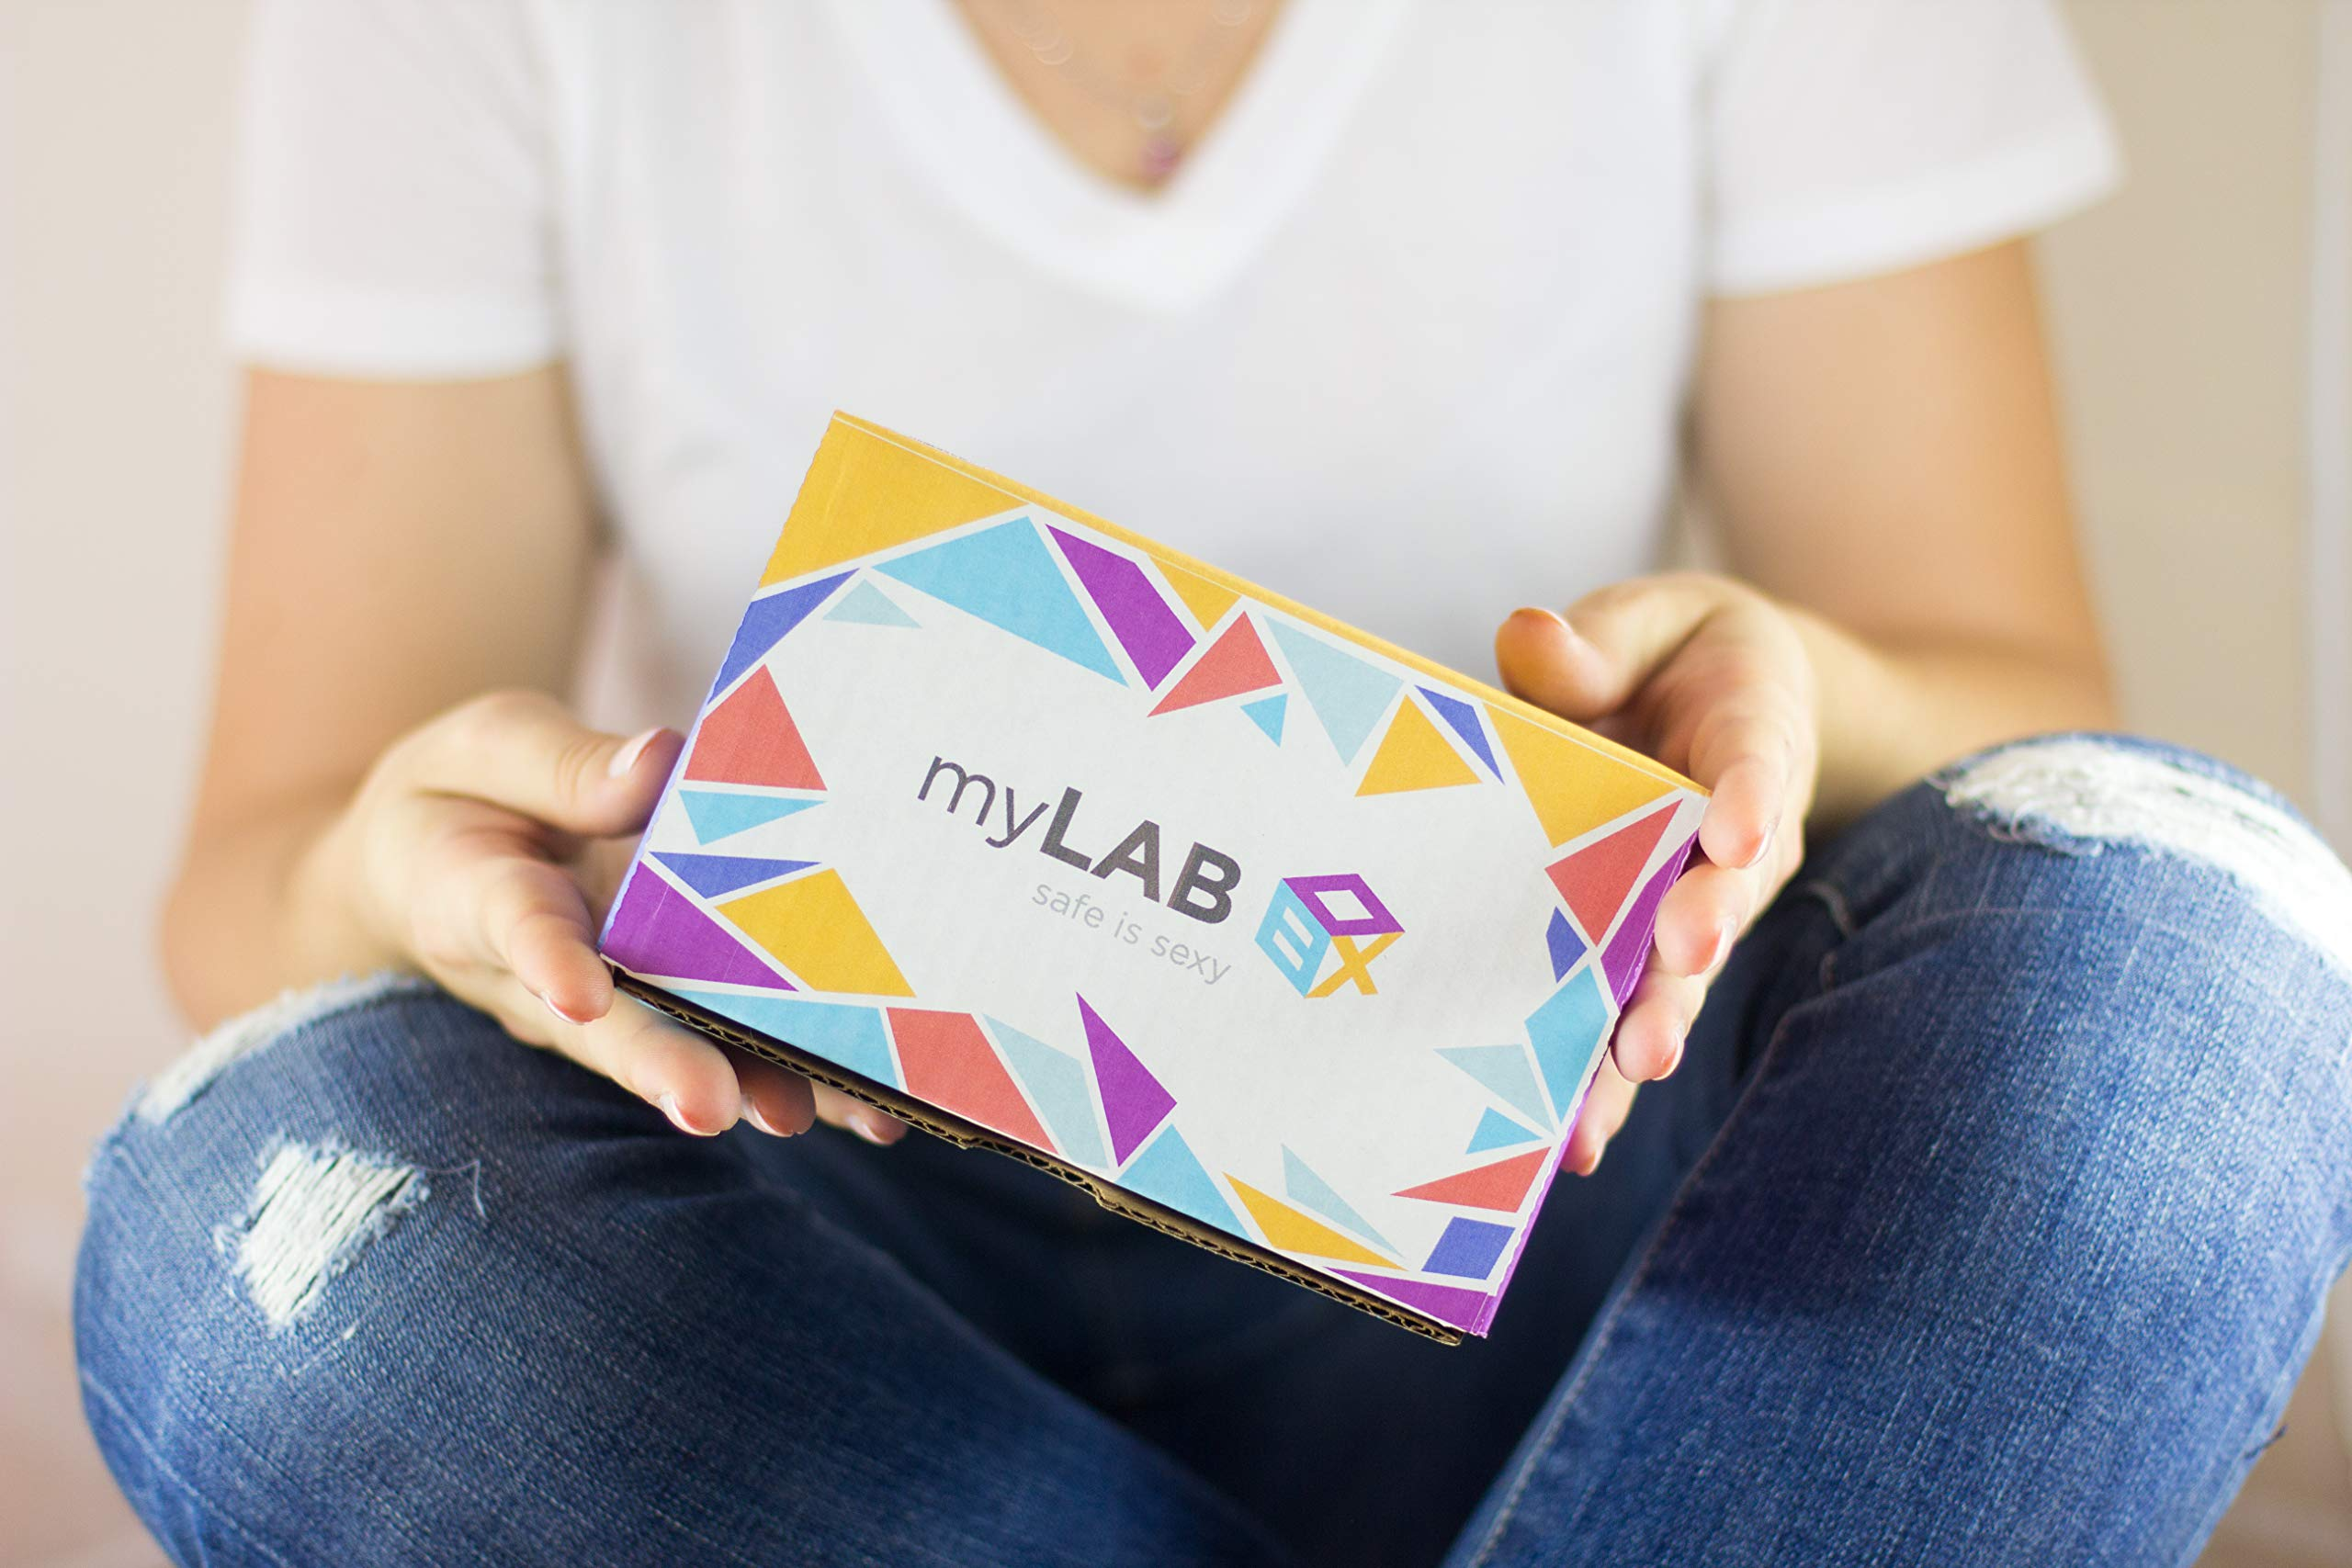 myLAB Box at Home STD Test for Women, Discreet Mail-in Kit, Lab Certified Results in 3-5 Days, Trichomoniasis,12602 by myLAB Box